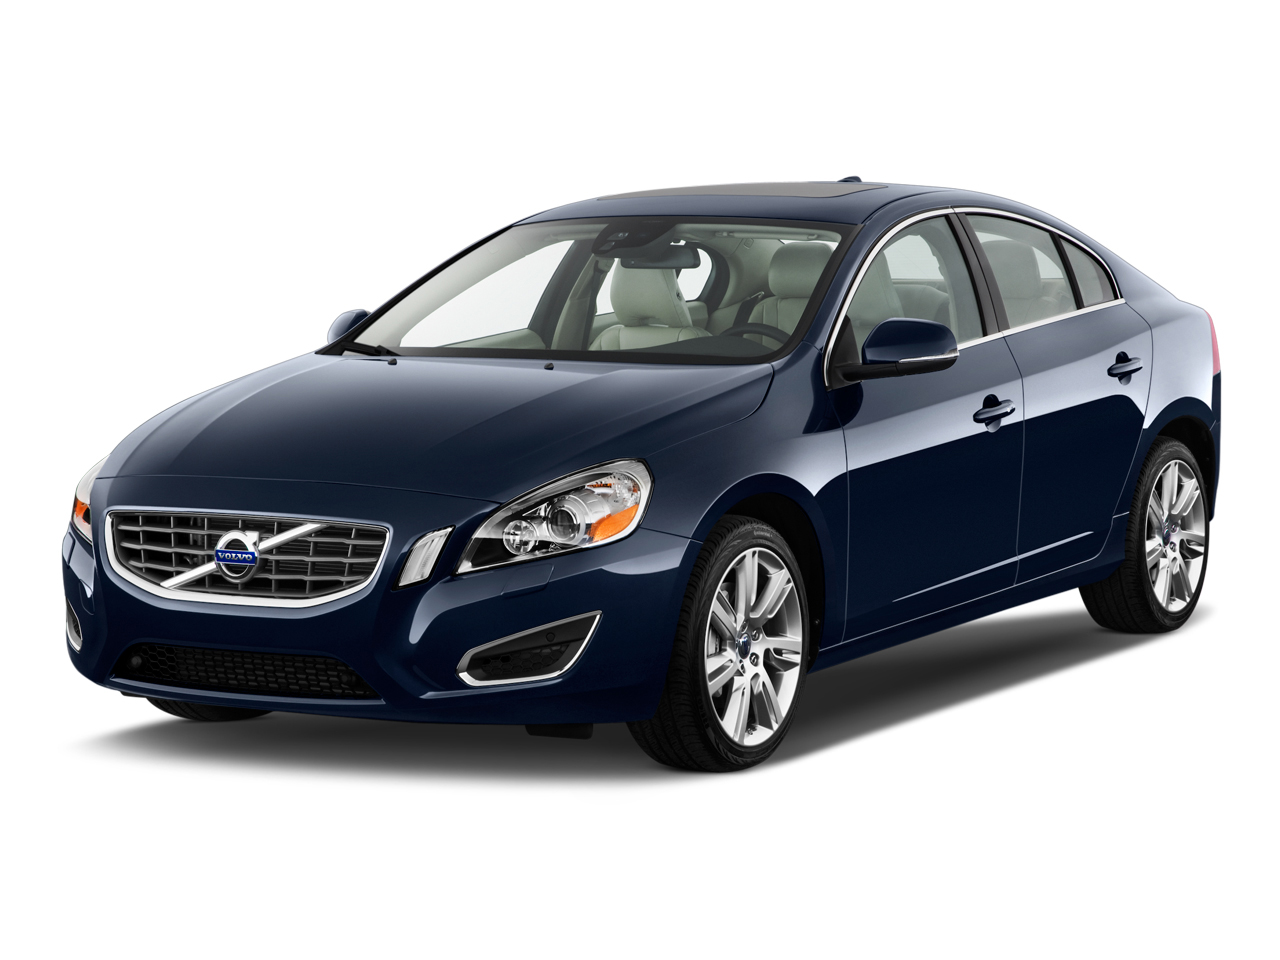 2012 Volvo S60 Review Ratings Specs Prices And Photos The Car Connection